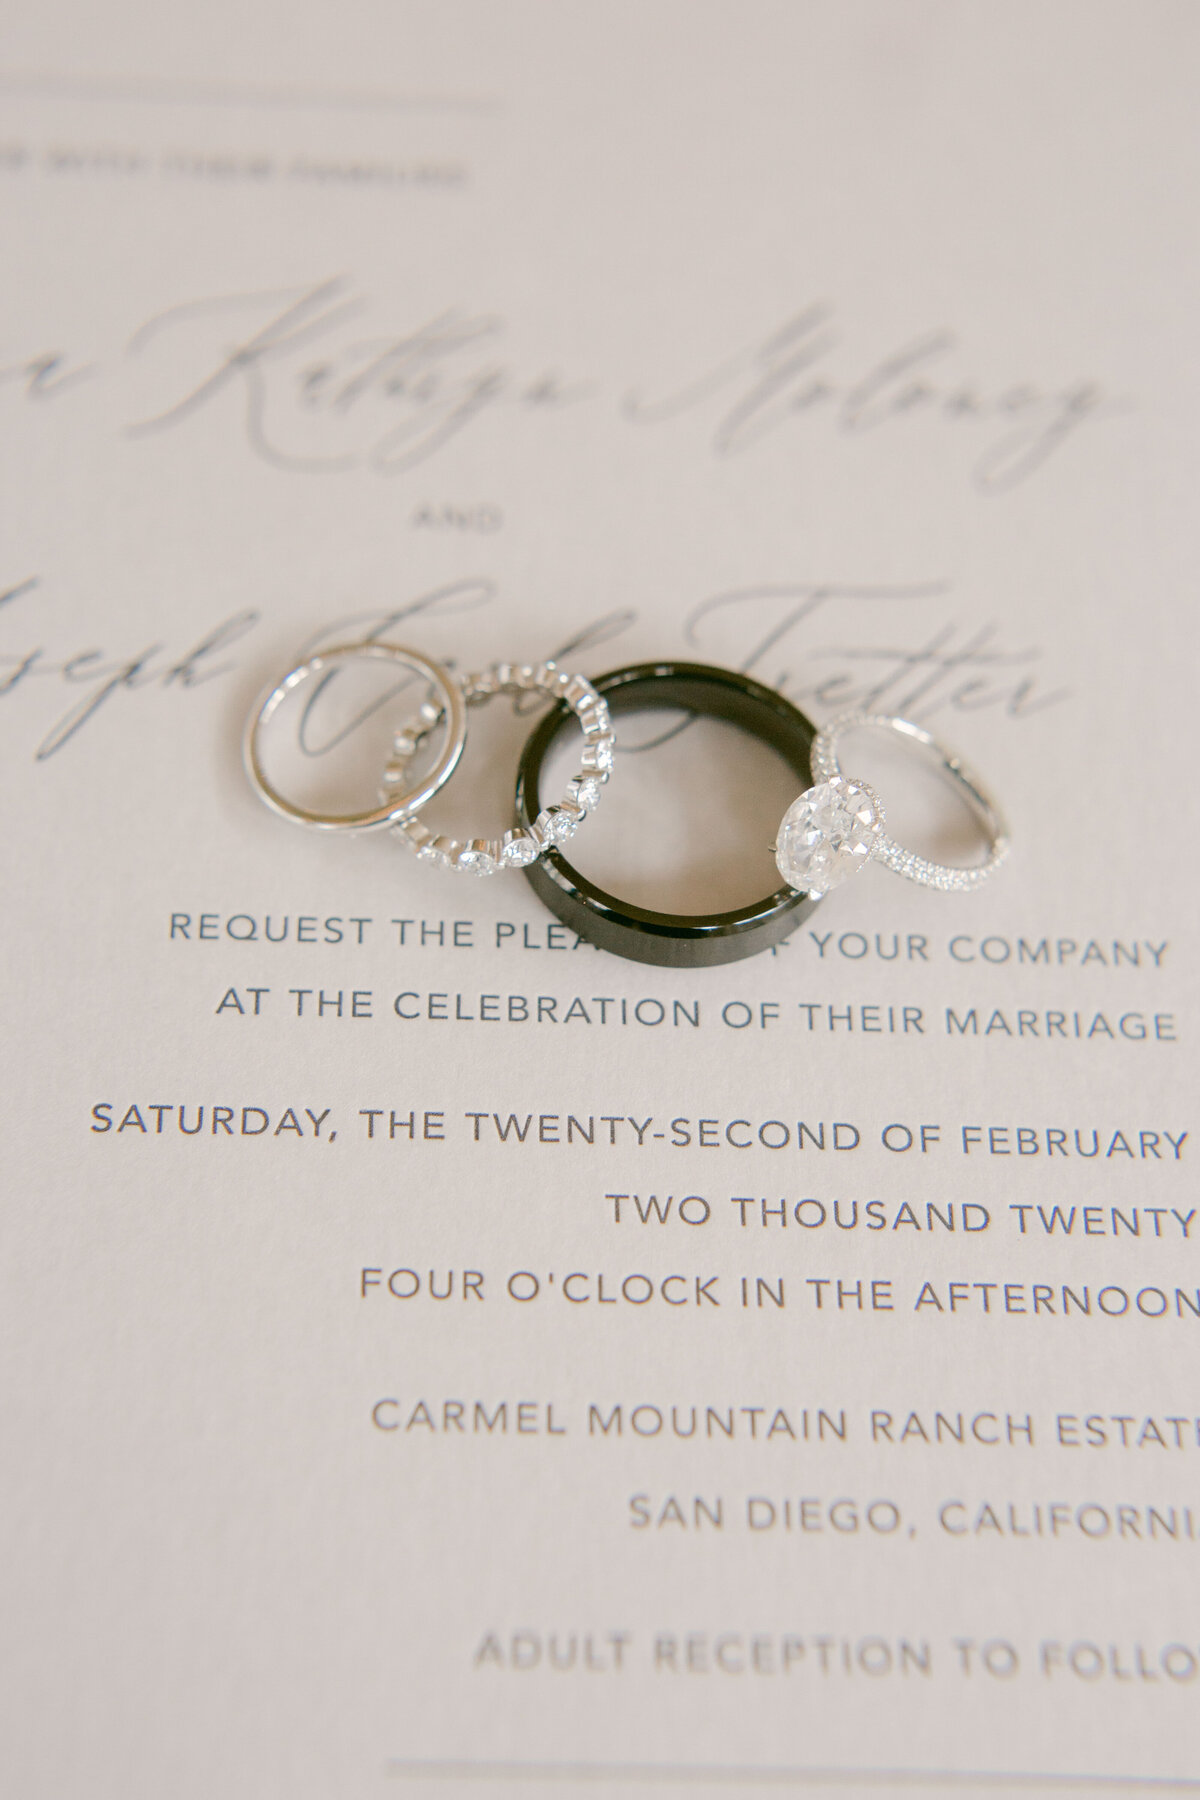 Tretter_Wedding_Carmel_Mountain_Ranch_San_Diego_California_Jacksonville_Florida_Devon_Donnahoo_Photography_0294